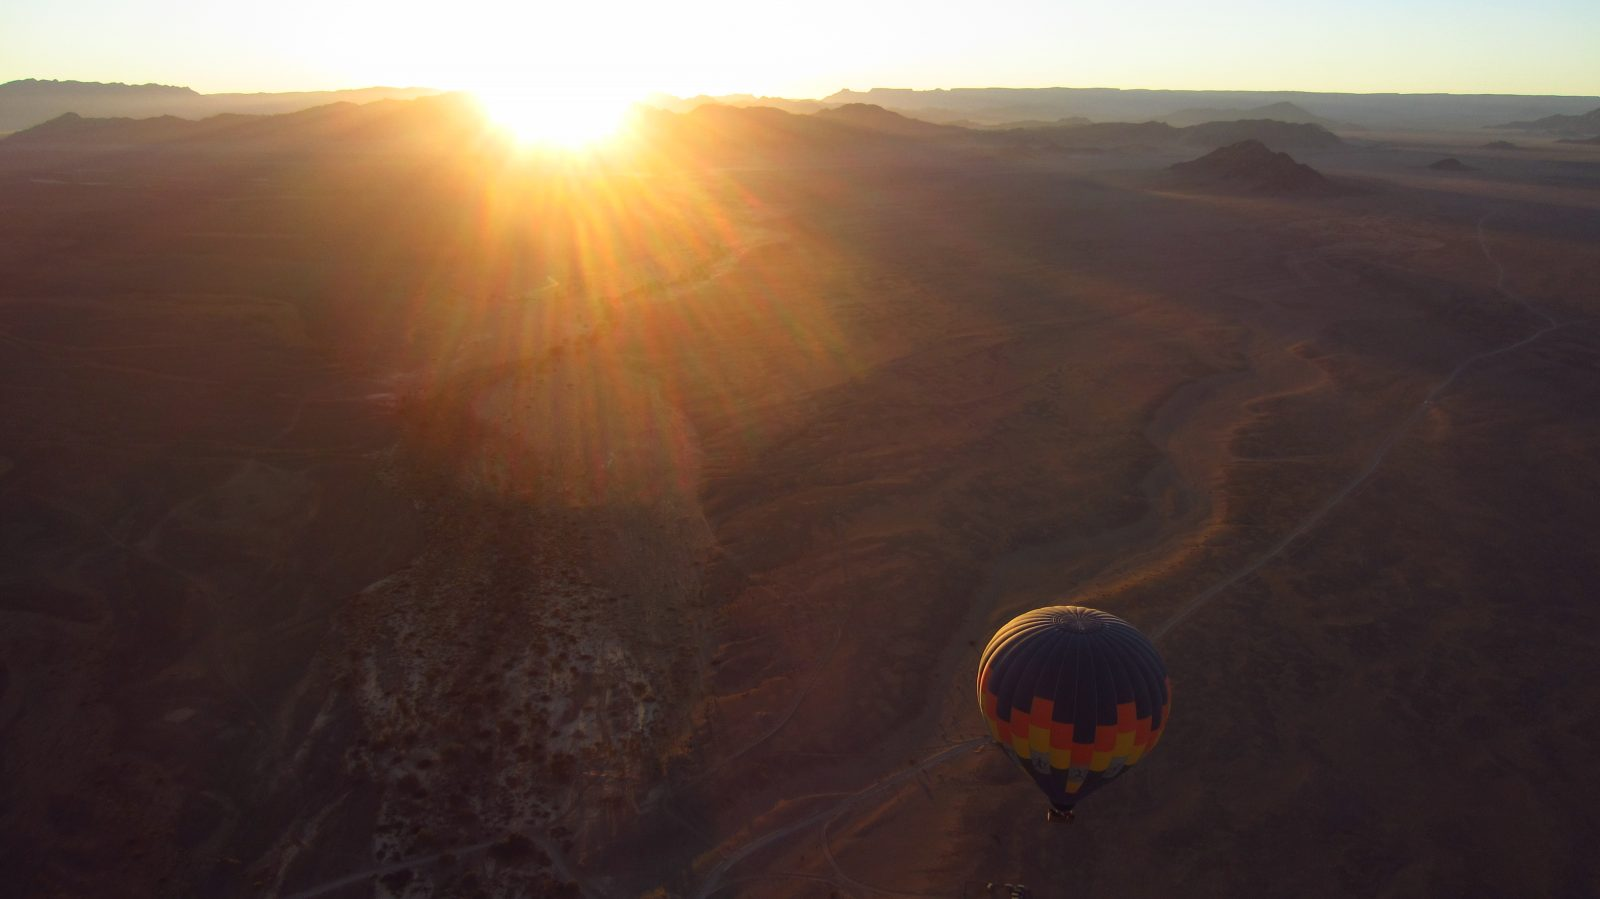 Watching the sunrise over the Namib Desert - Namibia